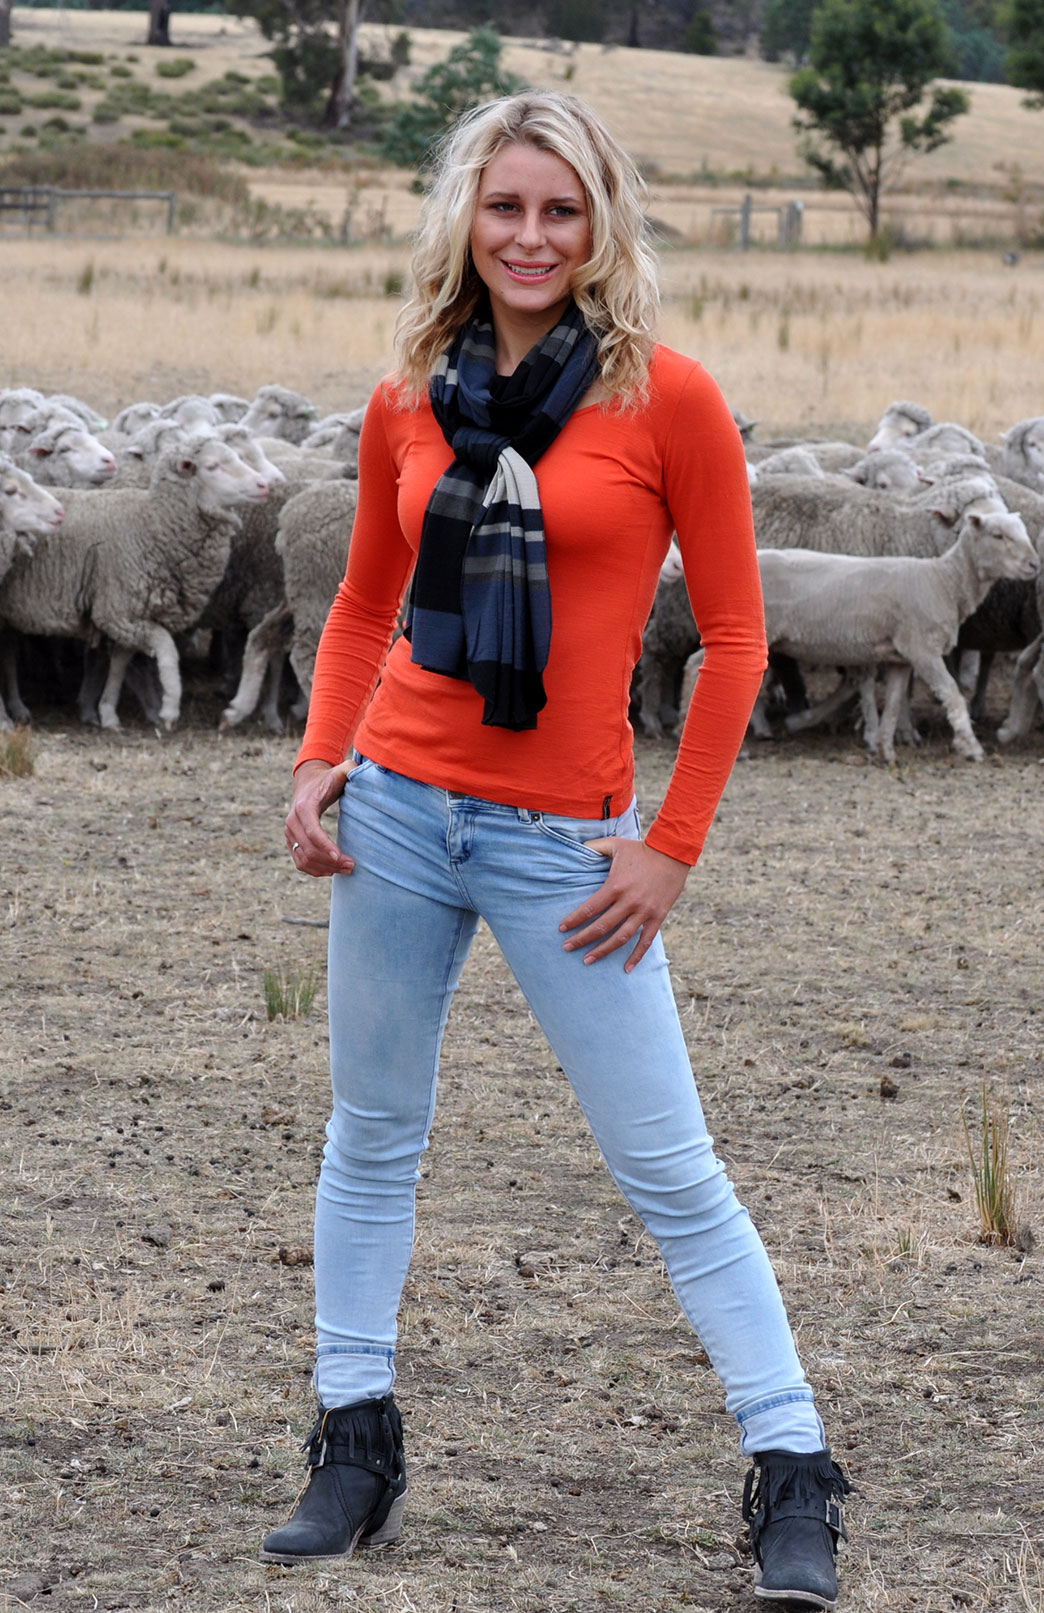 Scoop Neck Top - Smitten Merino Tasmania Australia